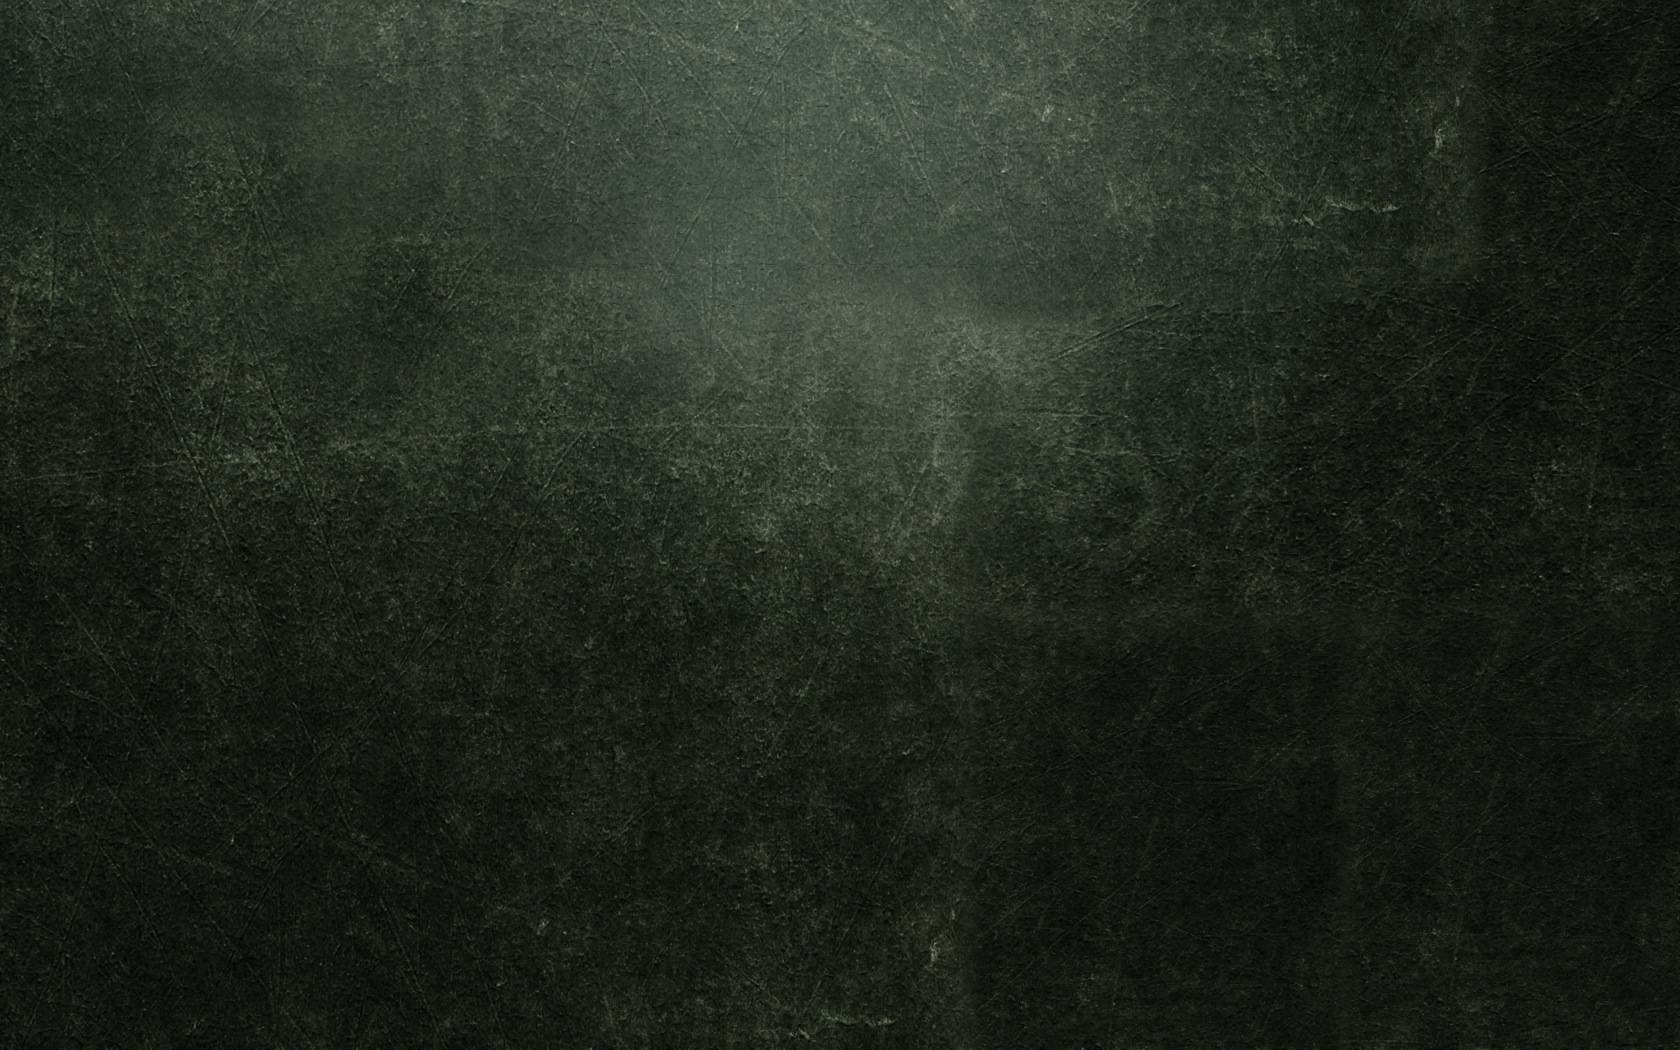 textured backgrounds 18614